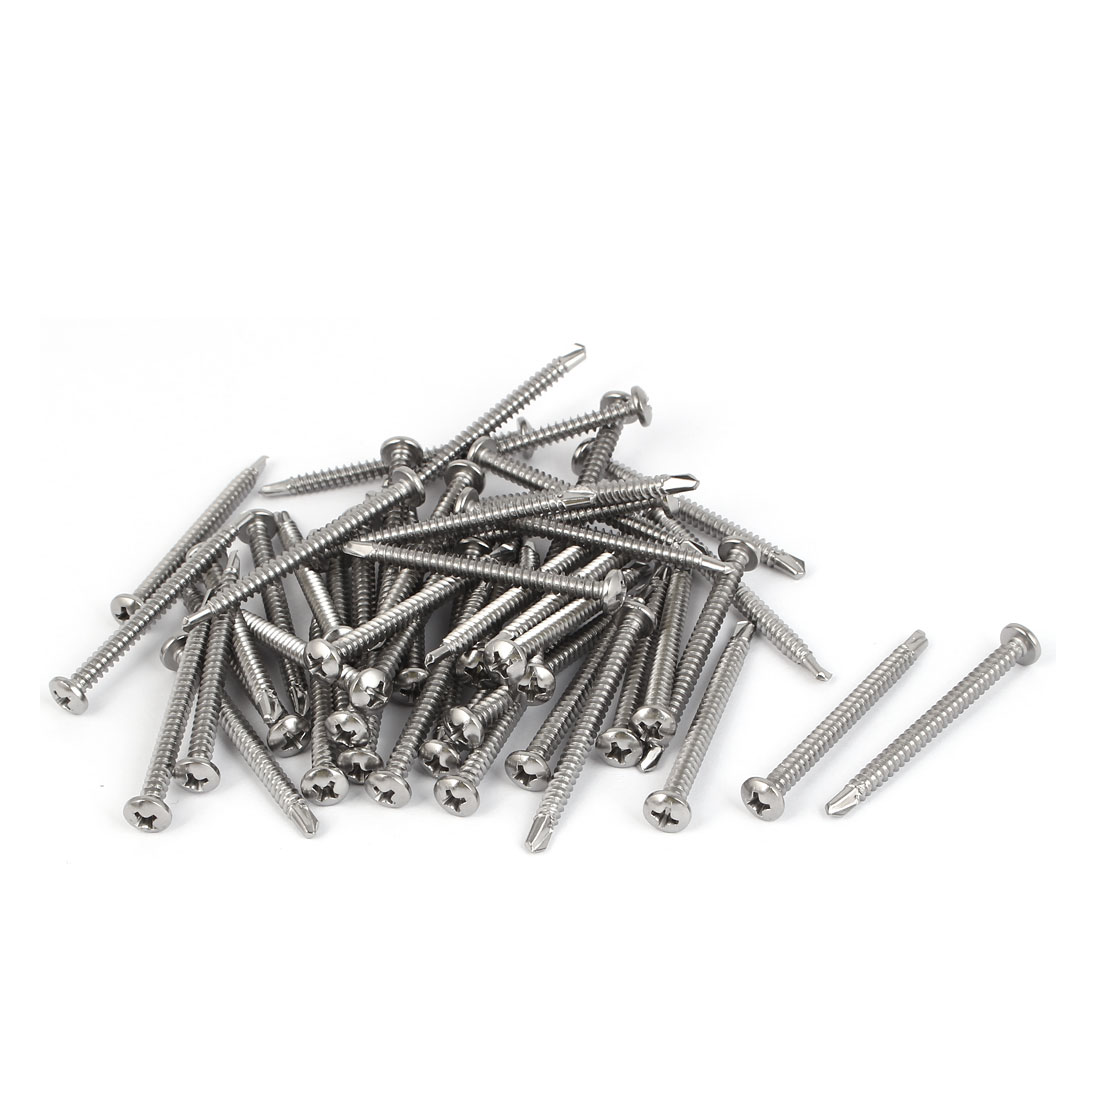 M4.2 x 50mm #8 Thread 410 Stainless Steel Pan Head Self Drilling Screws 50 Pcs